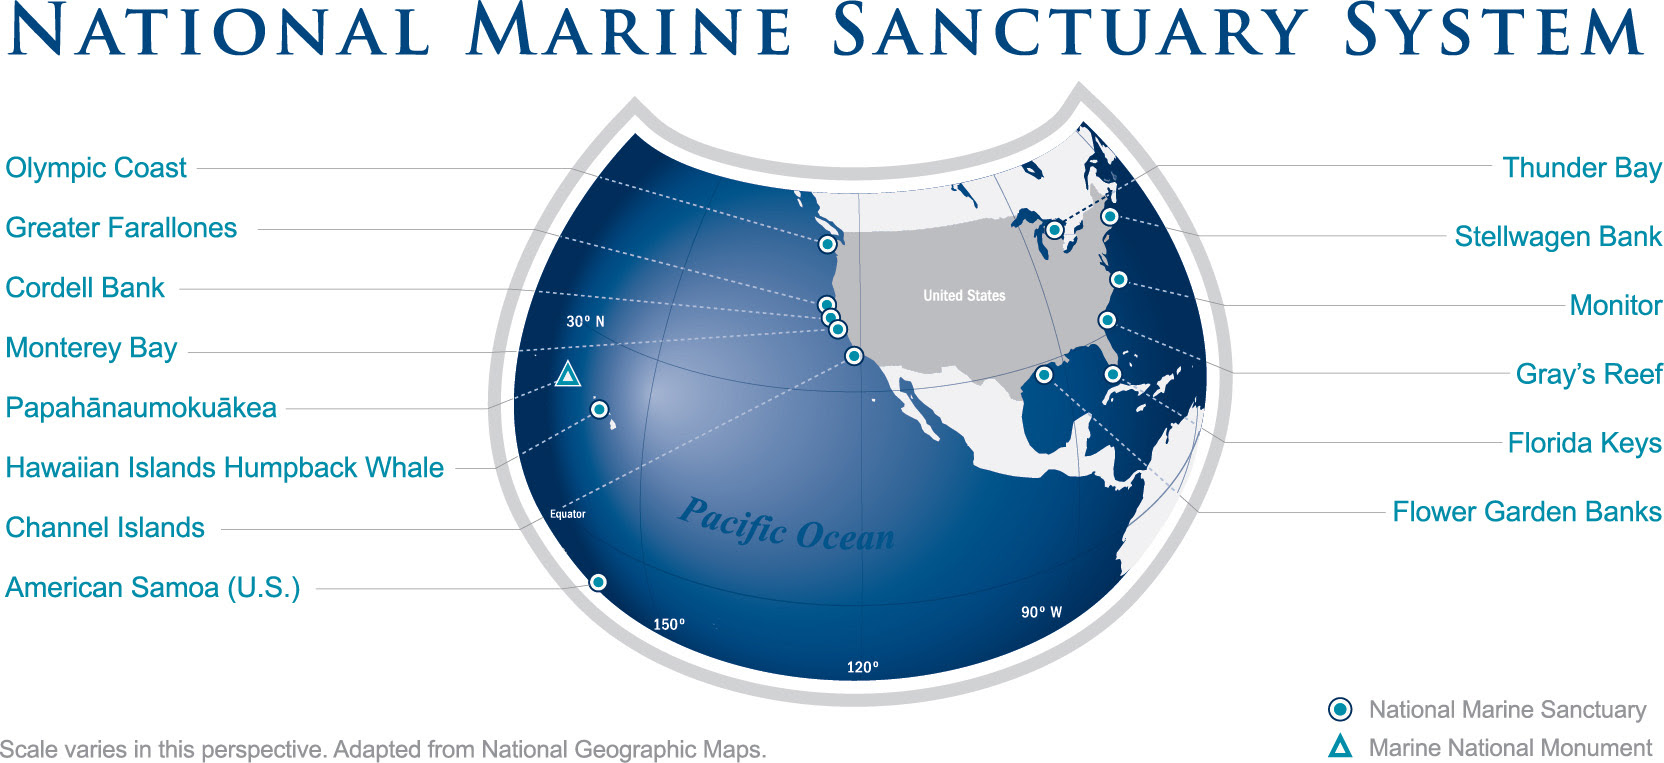 image by NOAA. Some of these marine sanctuaries are under focus by President Trump's Executive Order.